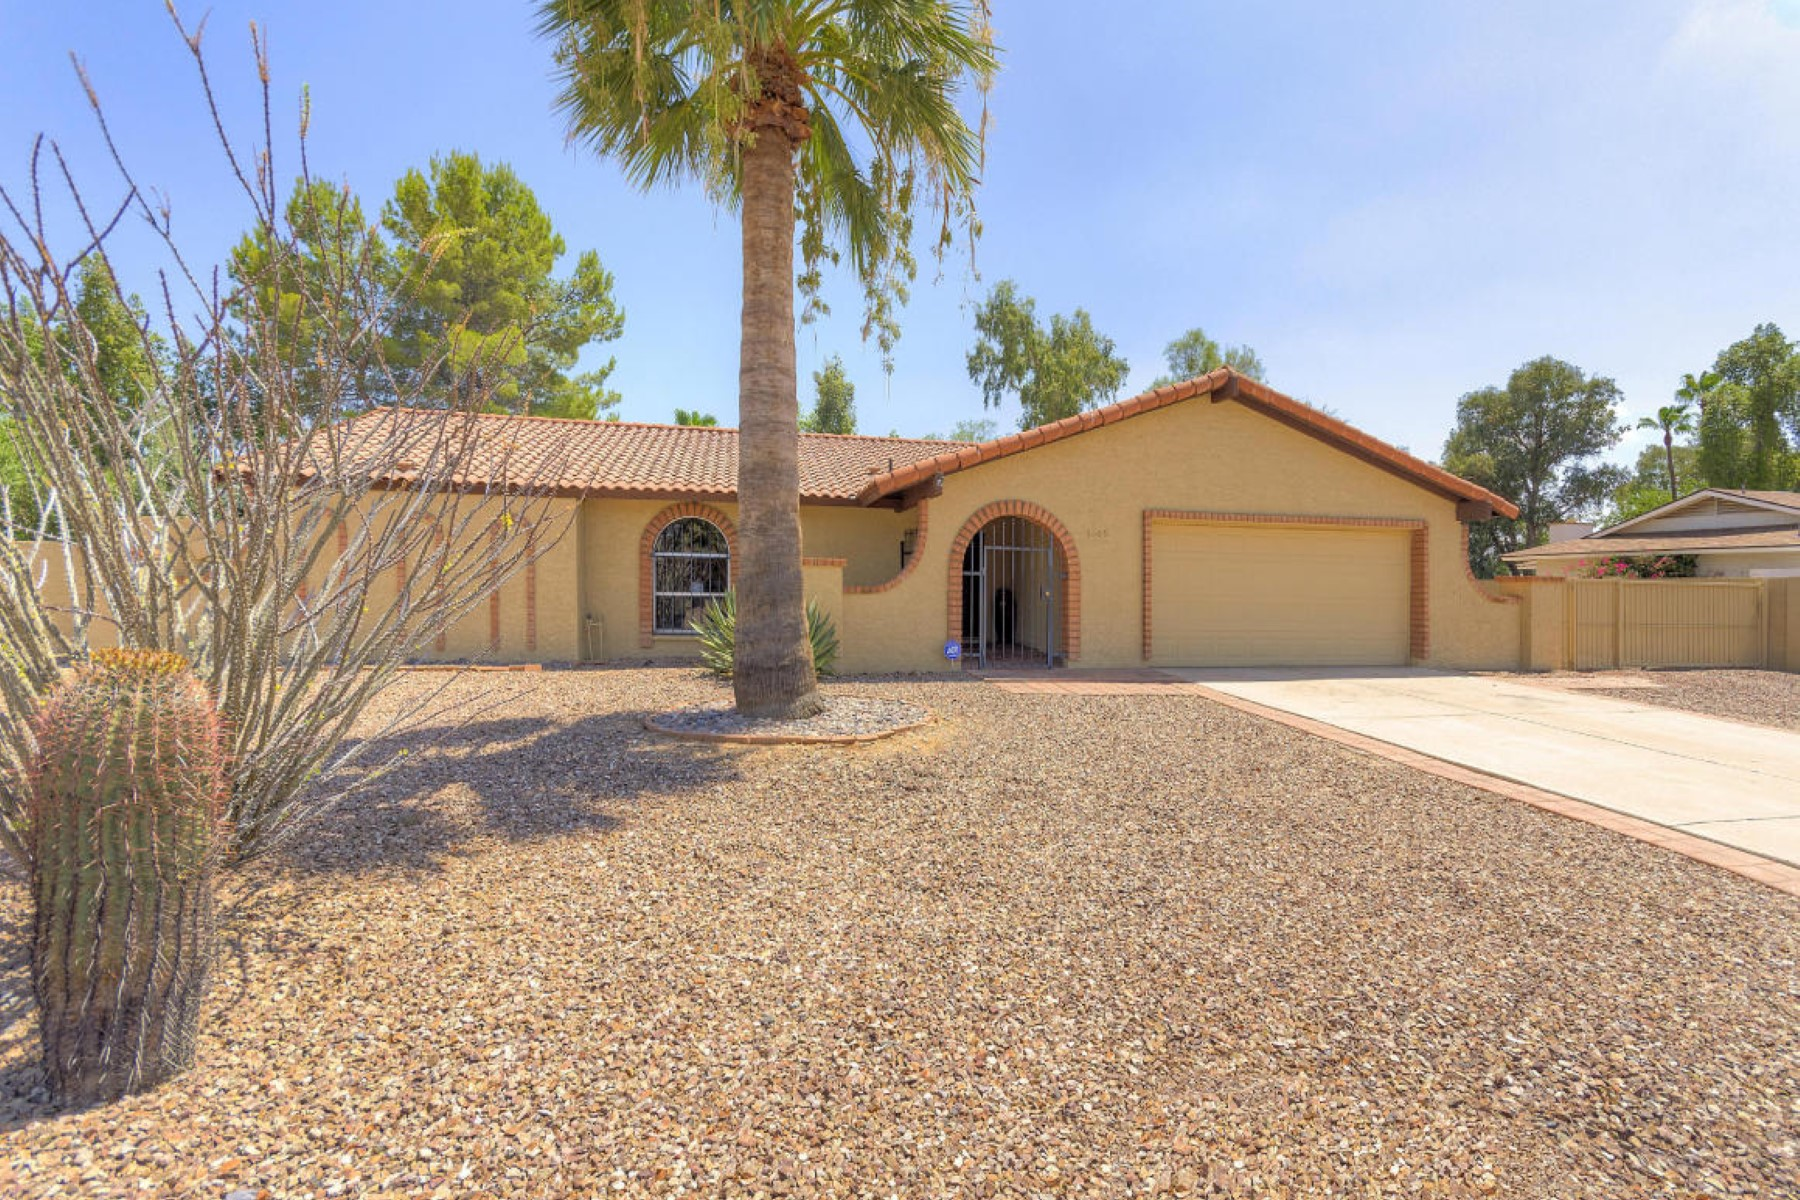 獨棟家庭住宅 為 出售 在 Charming home situated on nearly a 1/3 acre lot. 5809 E LUDLOW DR Scottsdale, 亞利桑那州 85254 美國